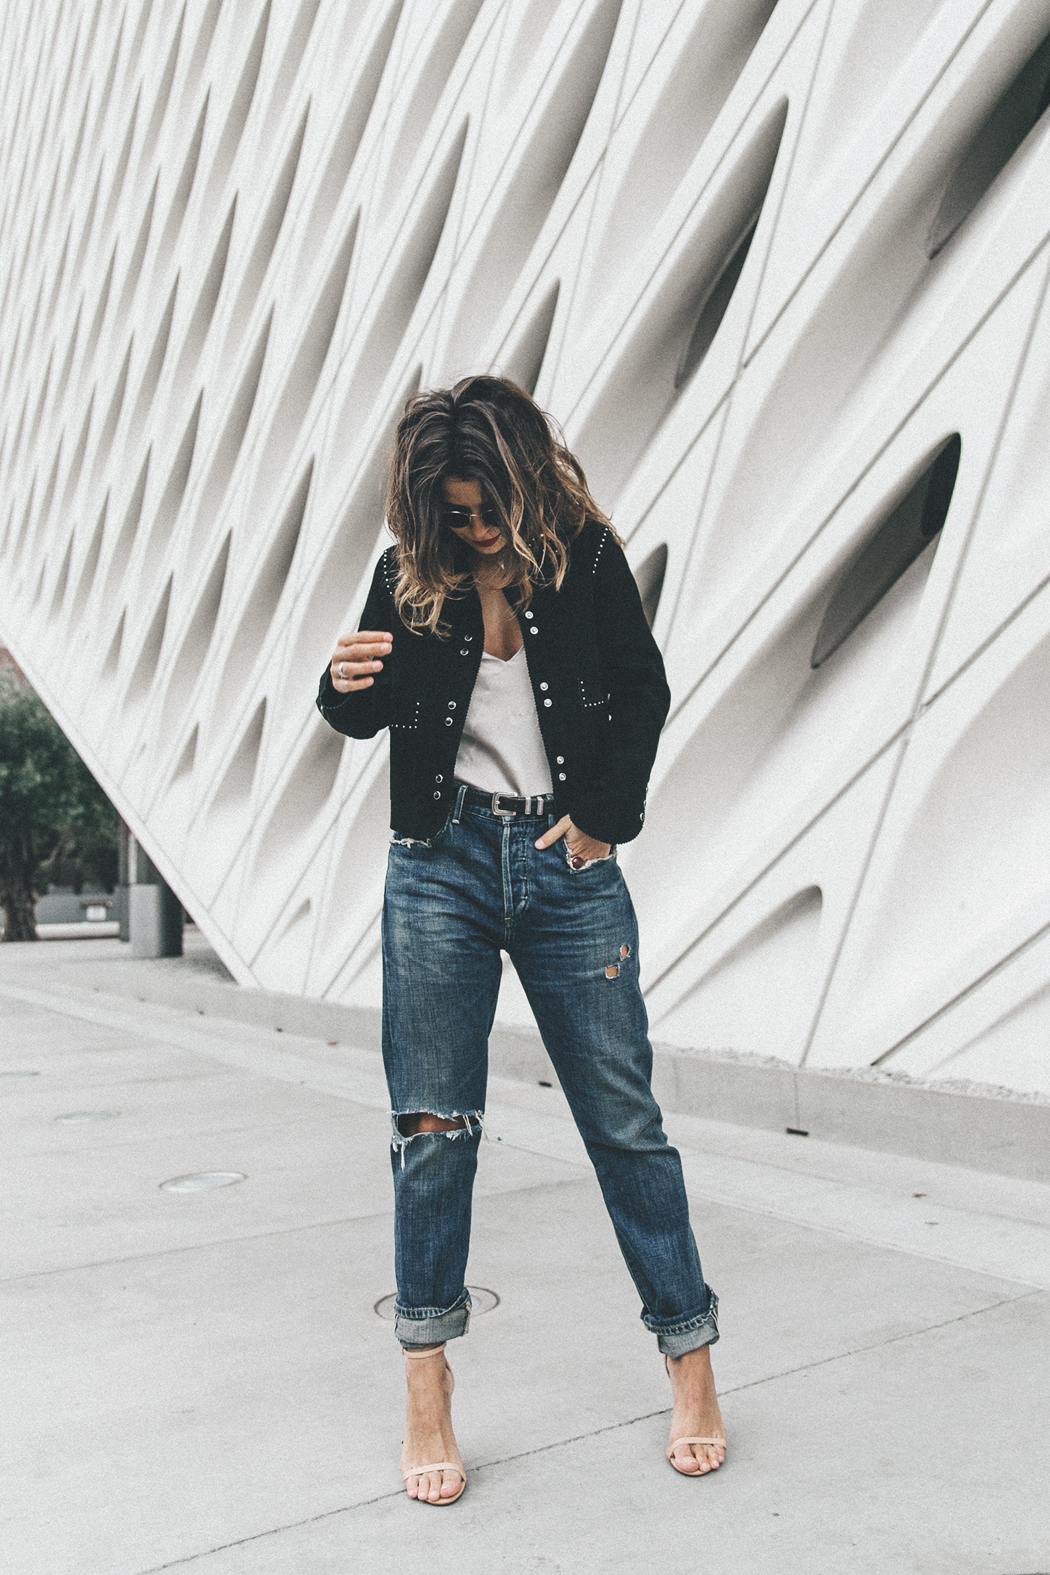 Sandro_Paris-Suede_Jacket-Citizen_OF_Humanity_Jeans-Raye_Sandals-The_Broad-Downtown_Los_Angeles-Outfit-Street_Style-43